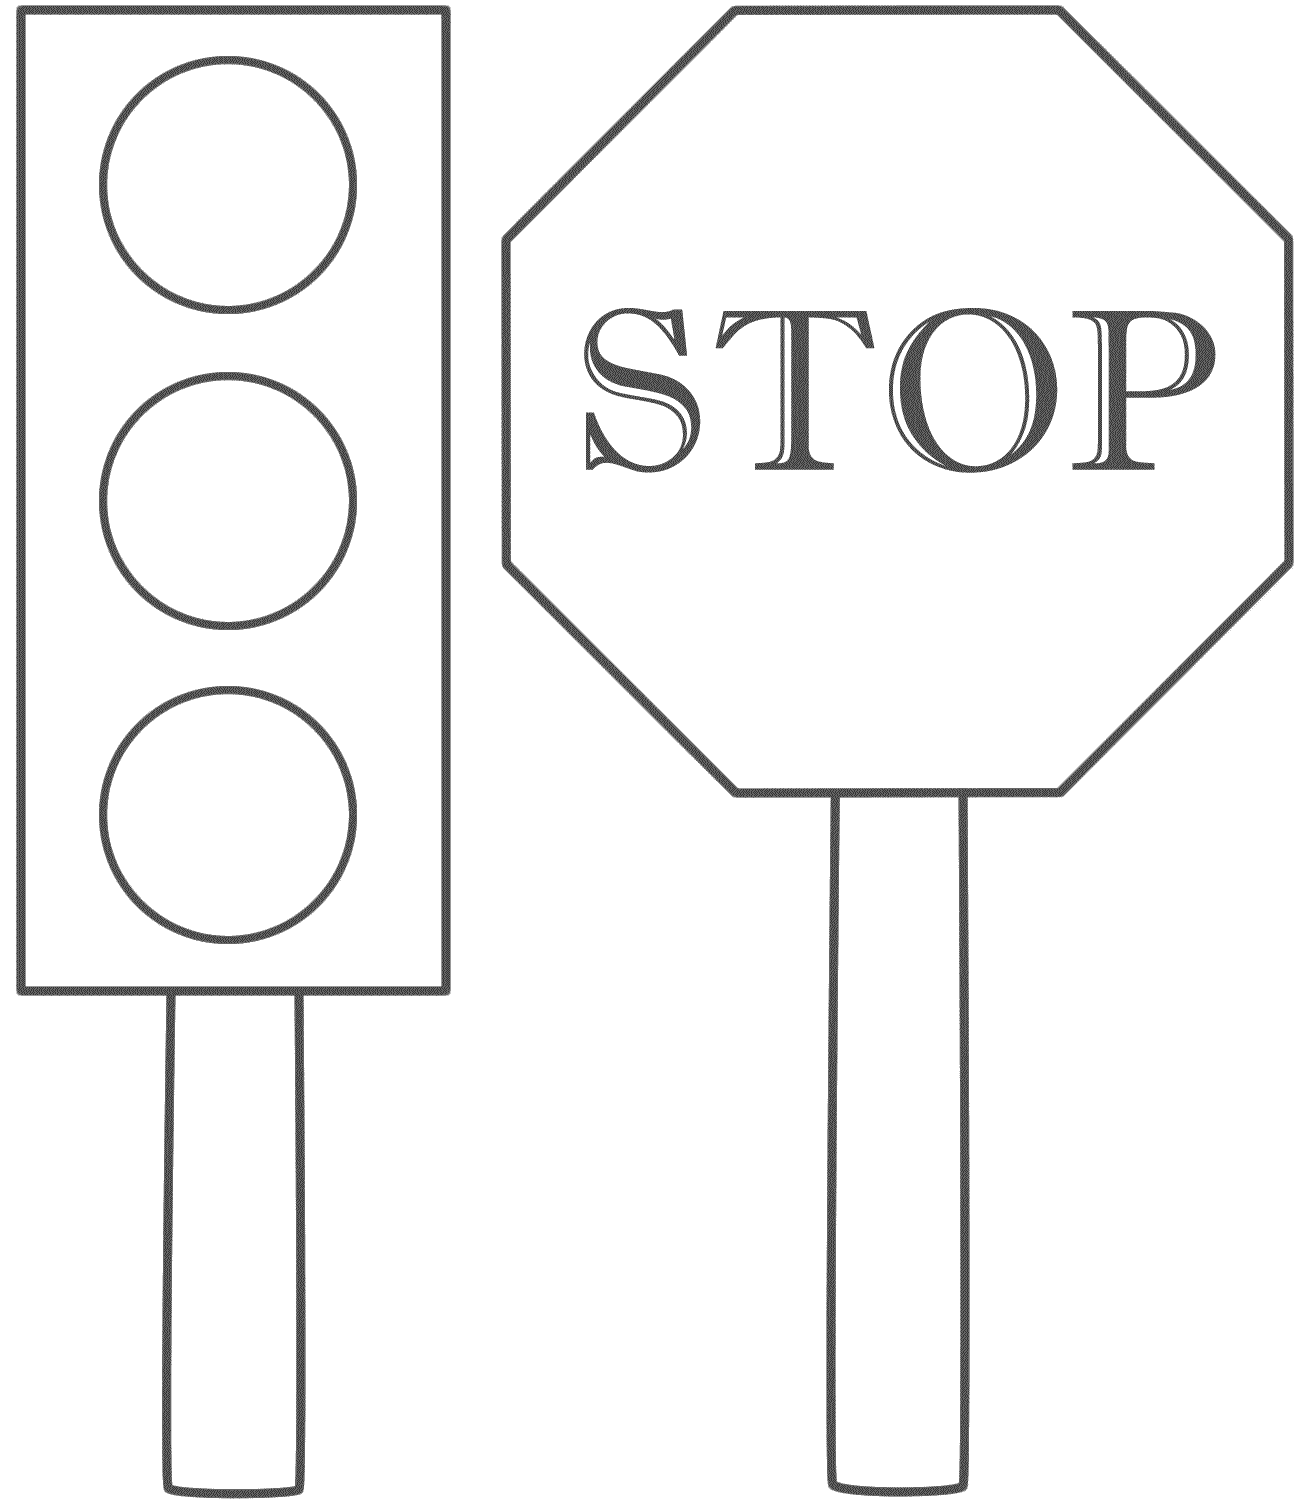 stoplightcoloringpage traffic light and stop sign coloring